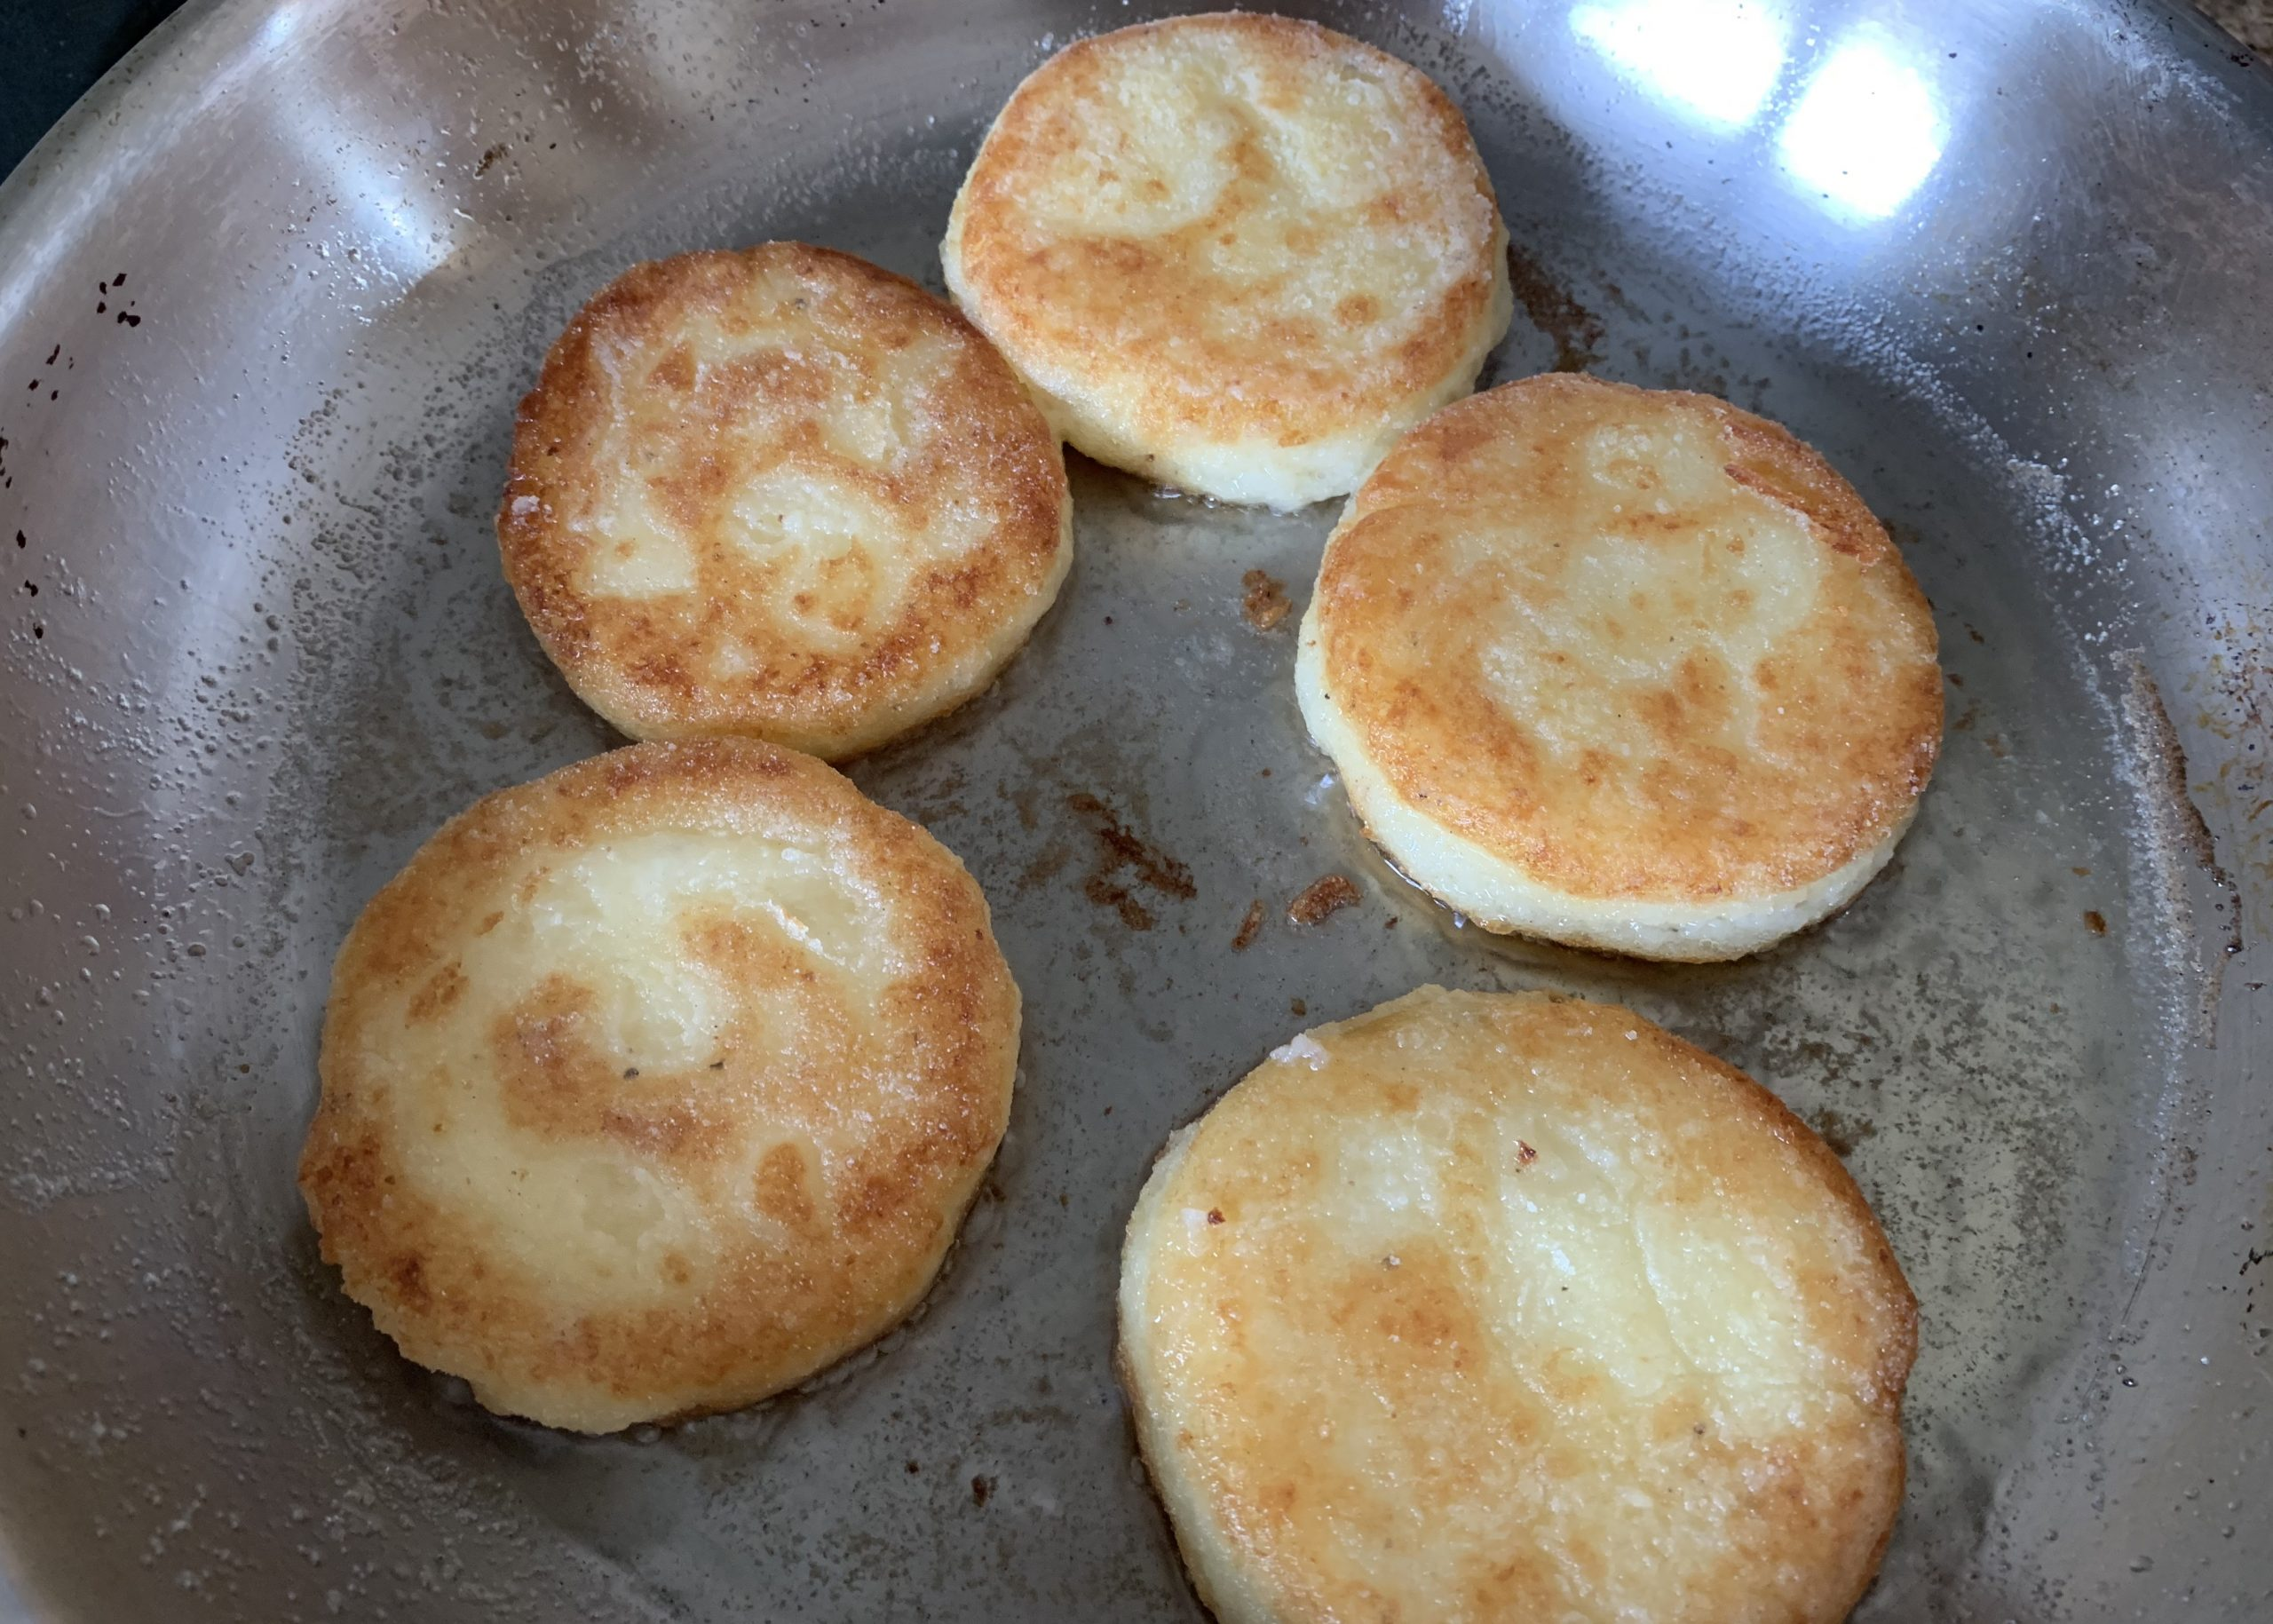 Gluten free potato cakes cooking in a frying pan